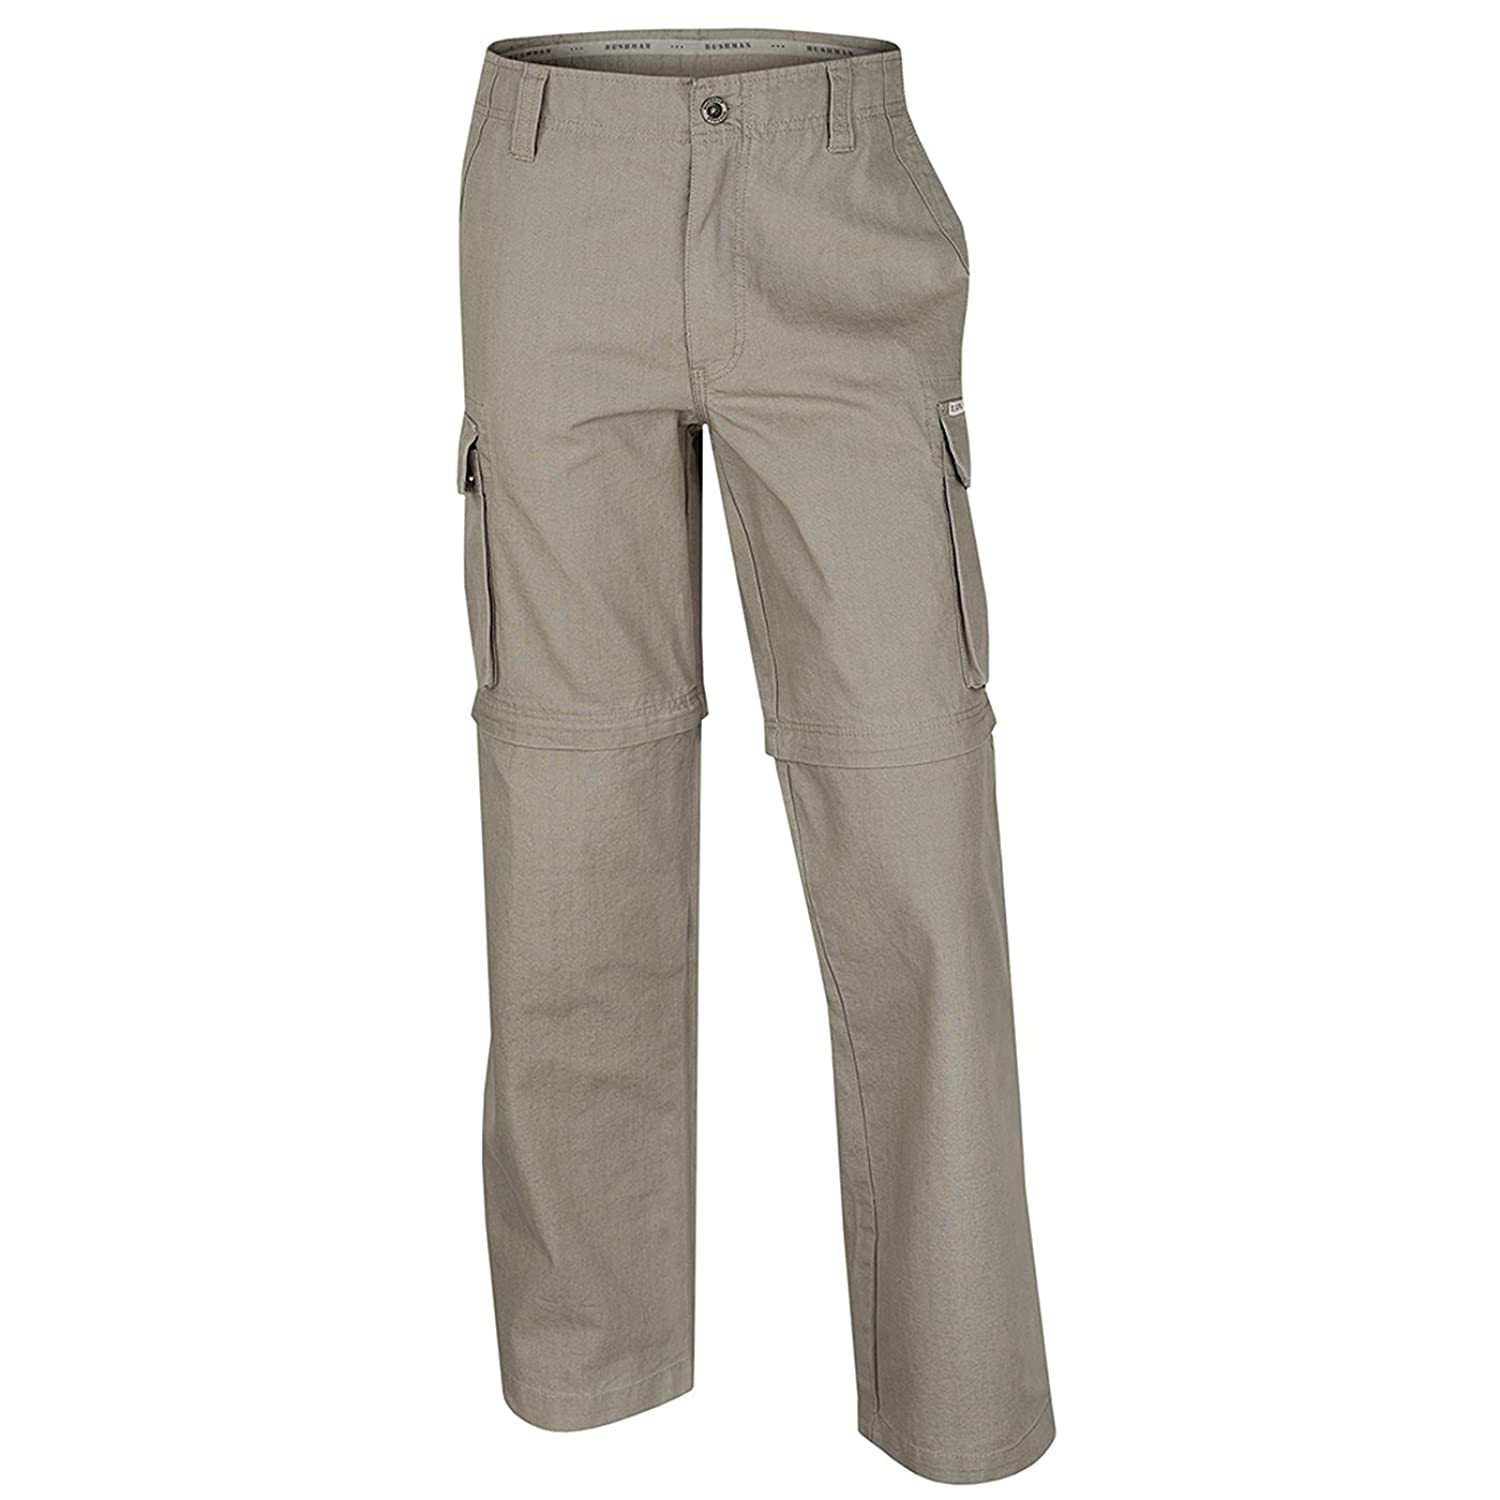 BUSHMAN 2in1 Men's Trousers HOOK (Shorts and Trousers in one)